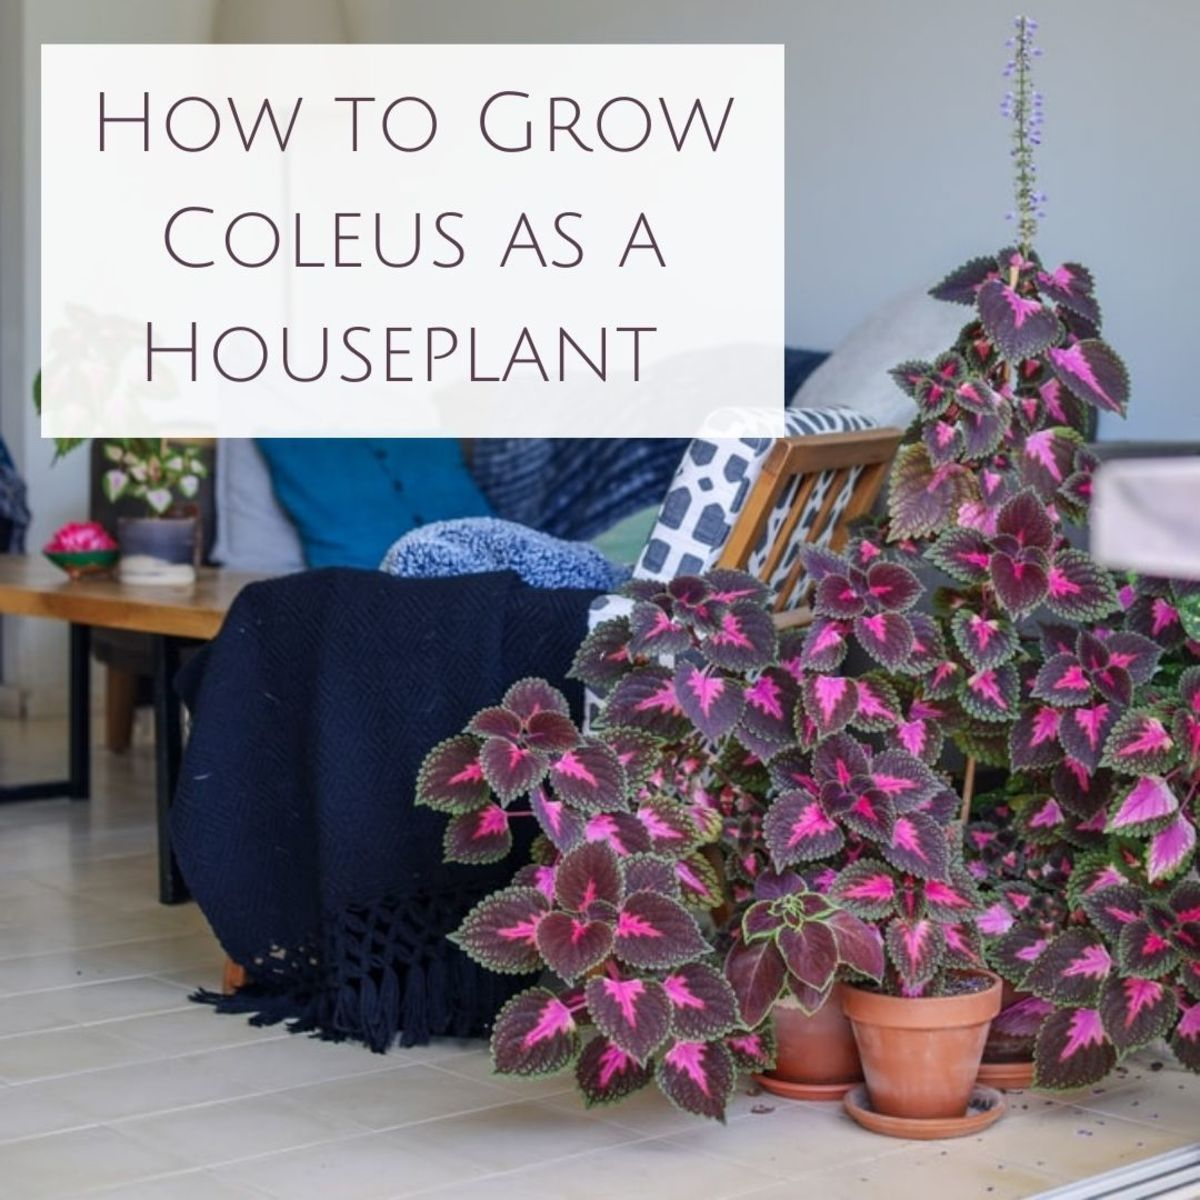 A coleus plant can make a great addition to your collection of house plants.